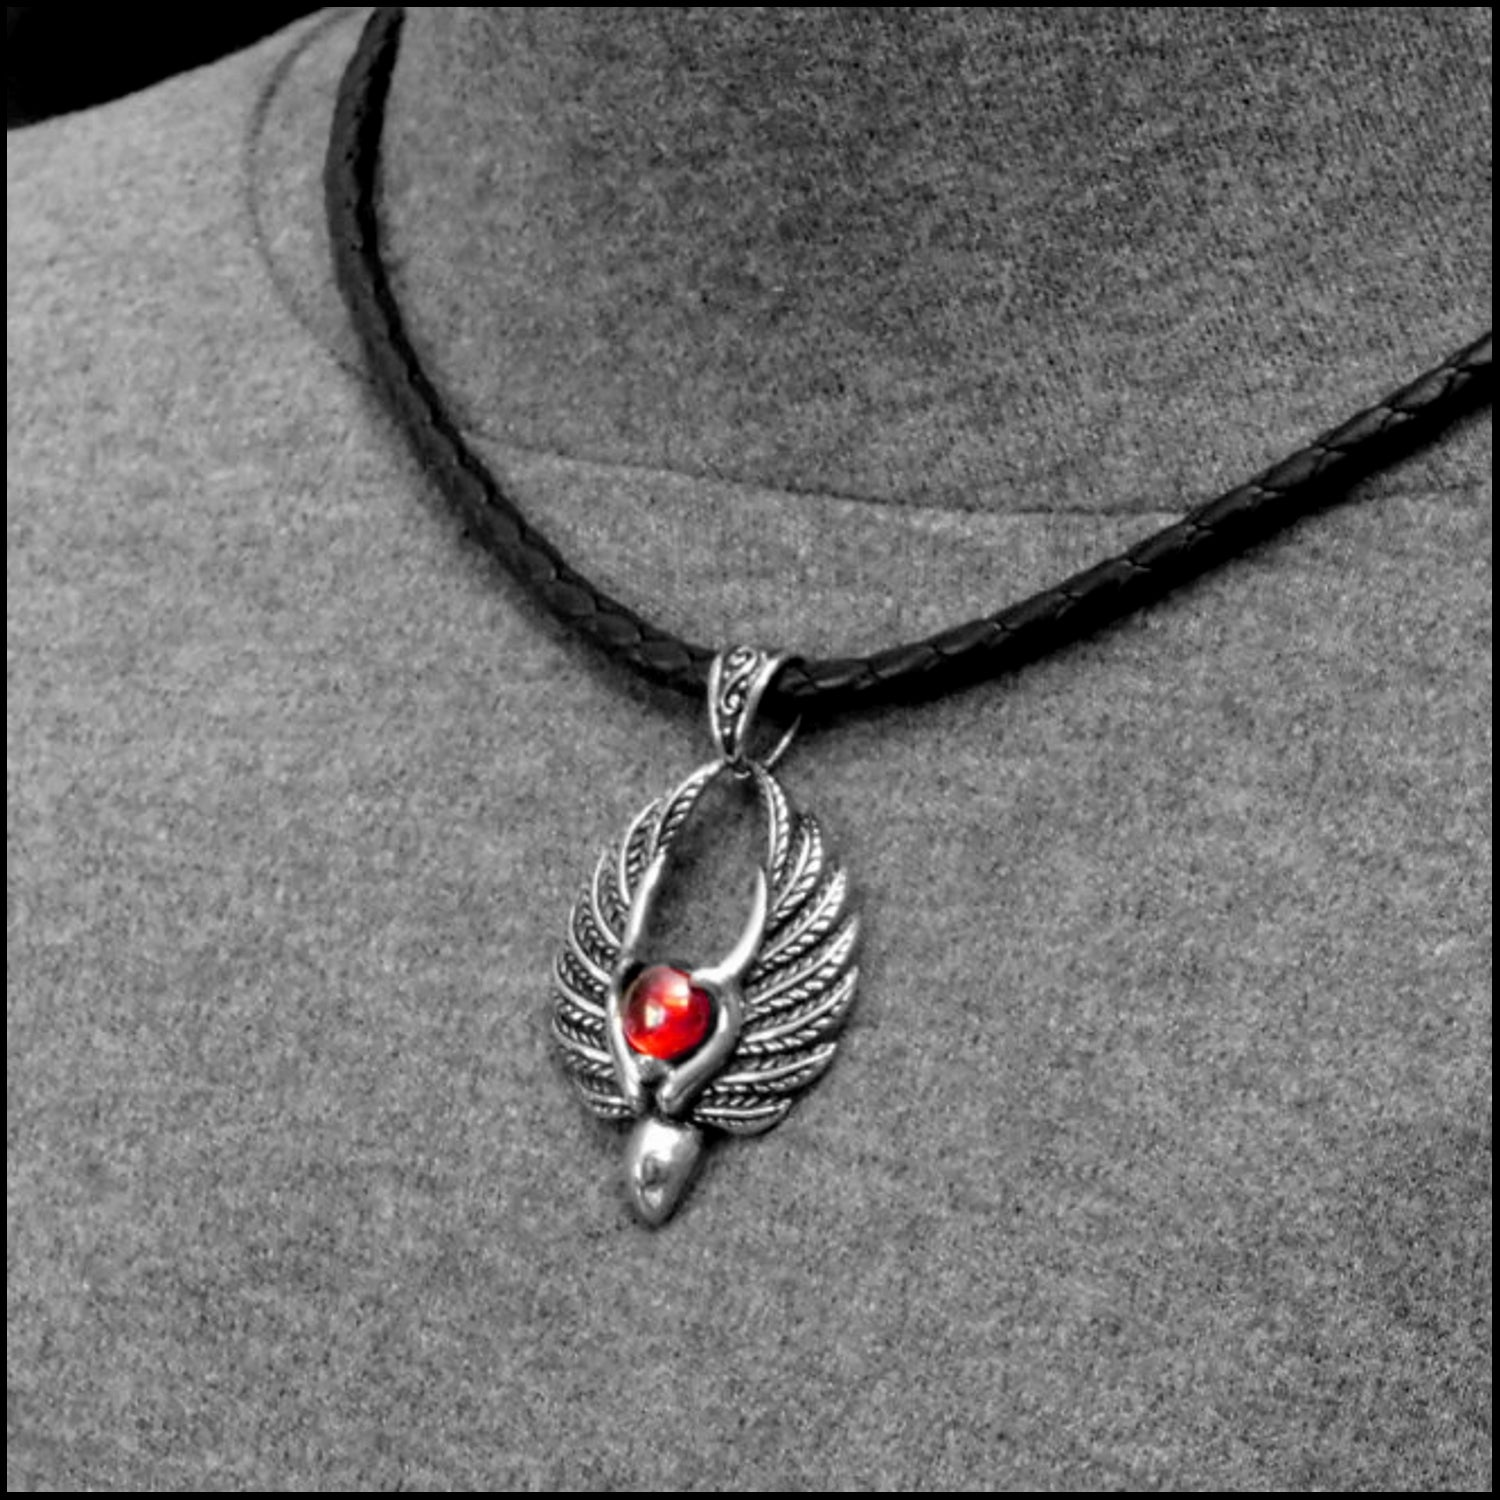 Blood Angel Pendant on Luxurious Nappa Leather Cord Necklace